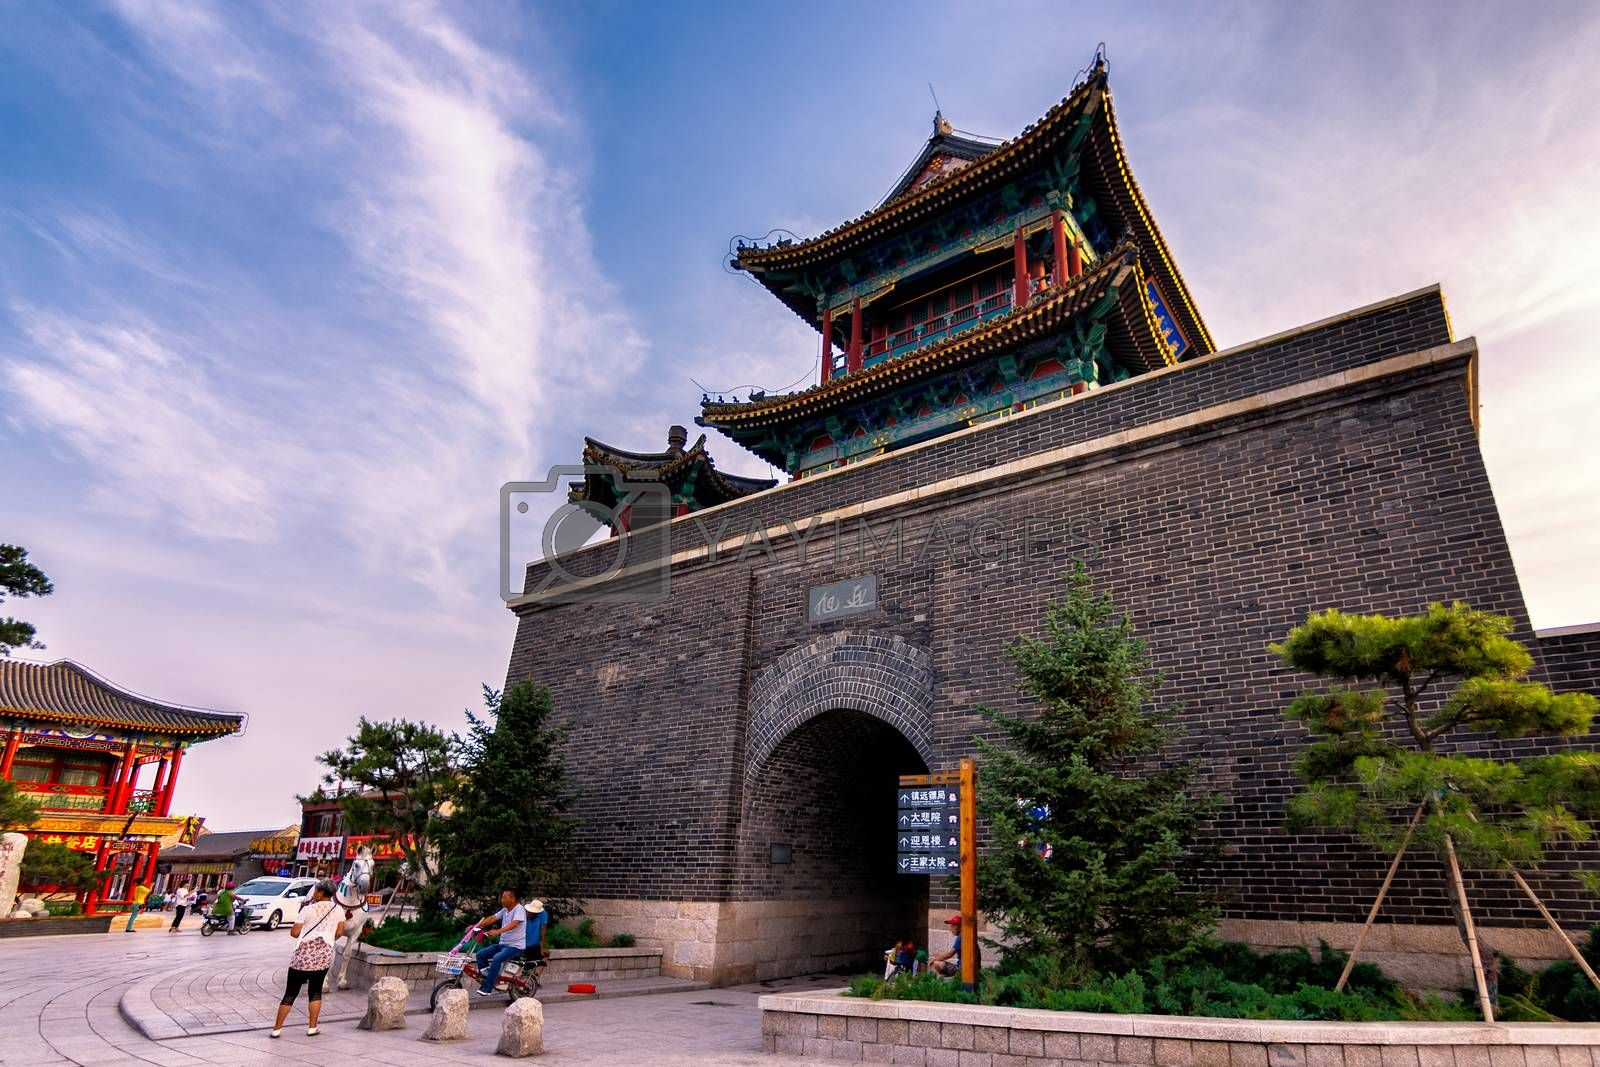 Qinhuangdao / China - July 23, 2016: The Bell and Drum Tower at Laolongtou Great Wall, Shanhaiguan, the Shanhai Pass